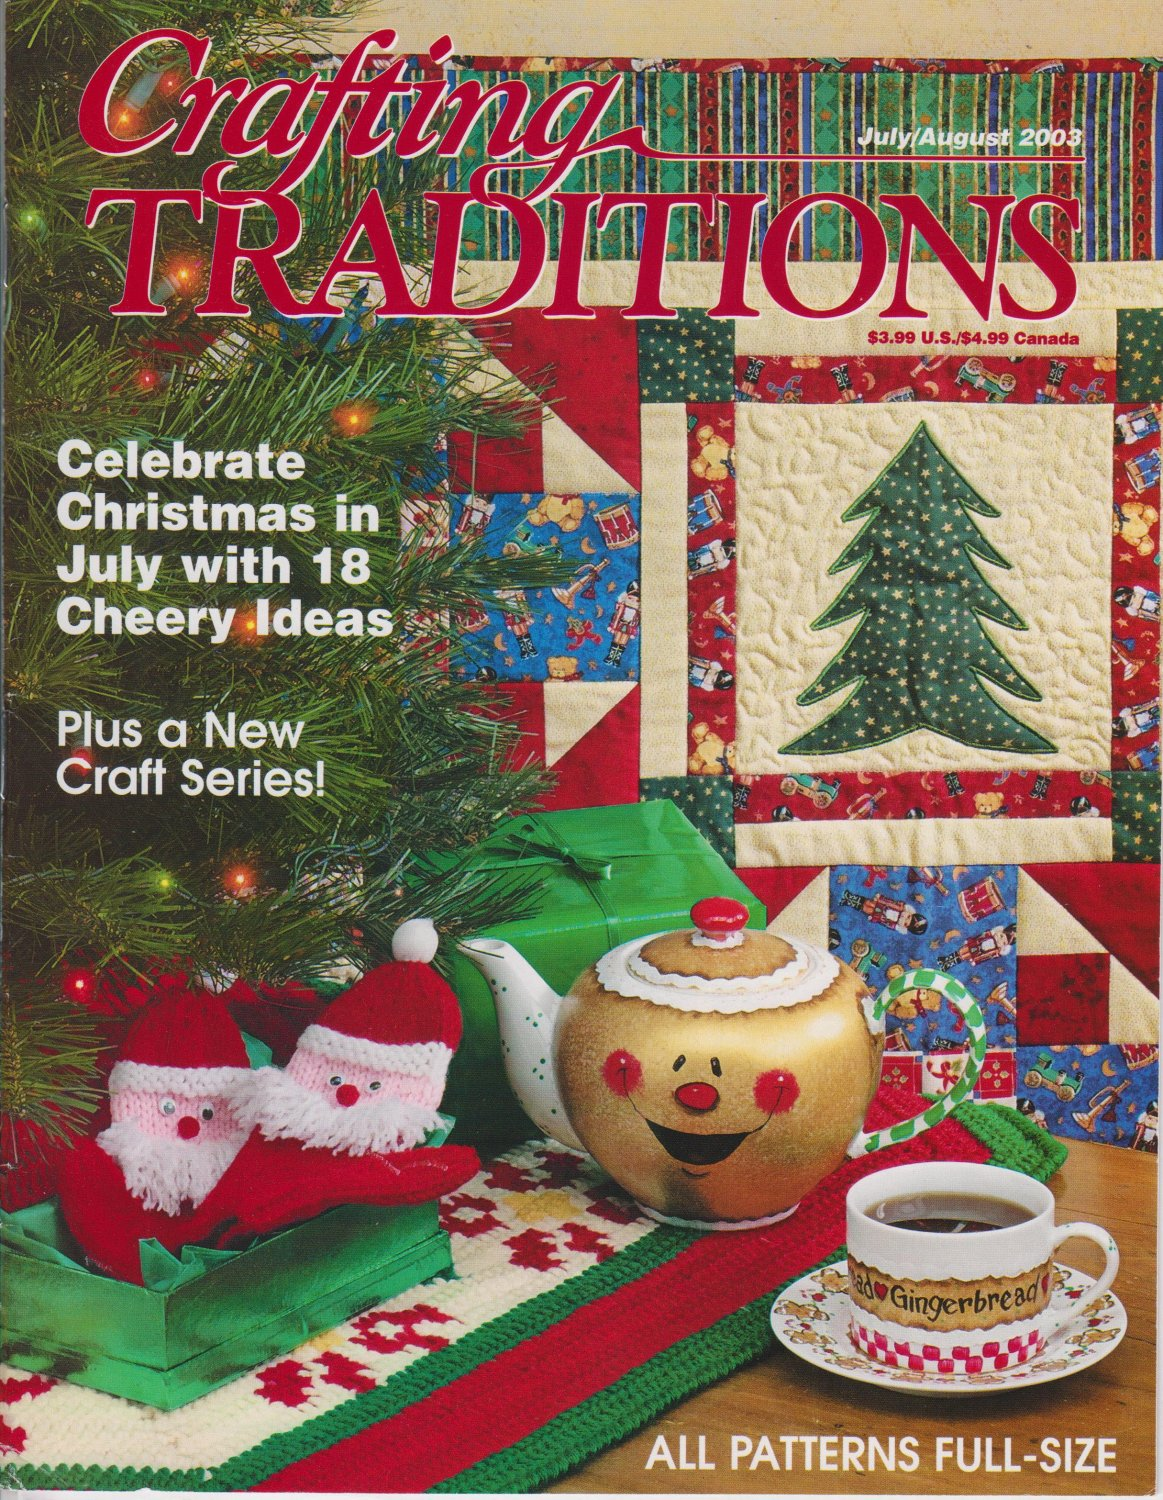 Crafting Traditions Magazine Issue July/August 2003